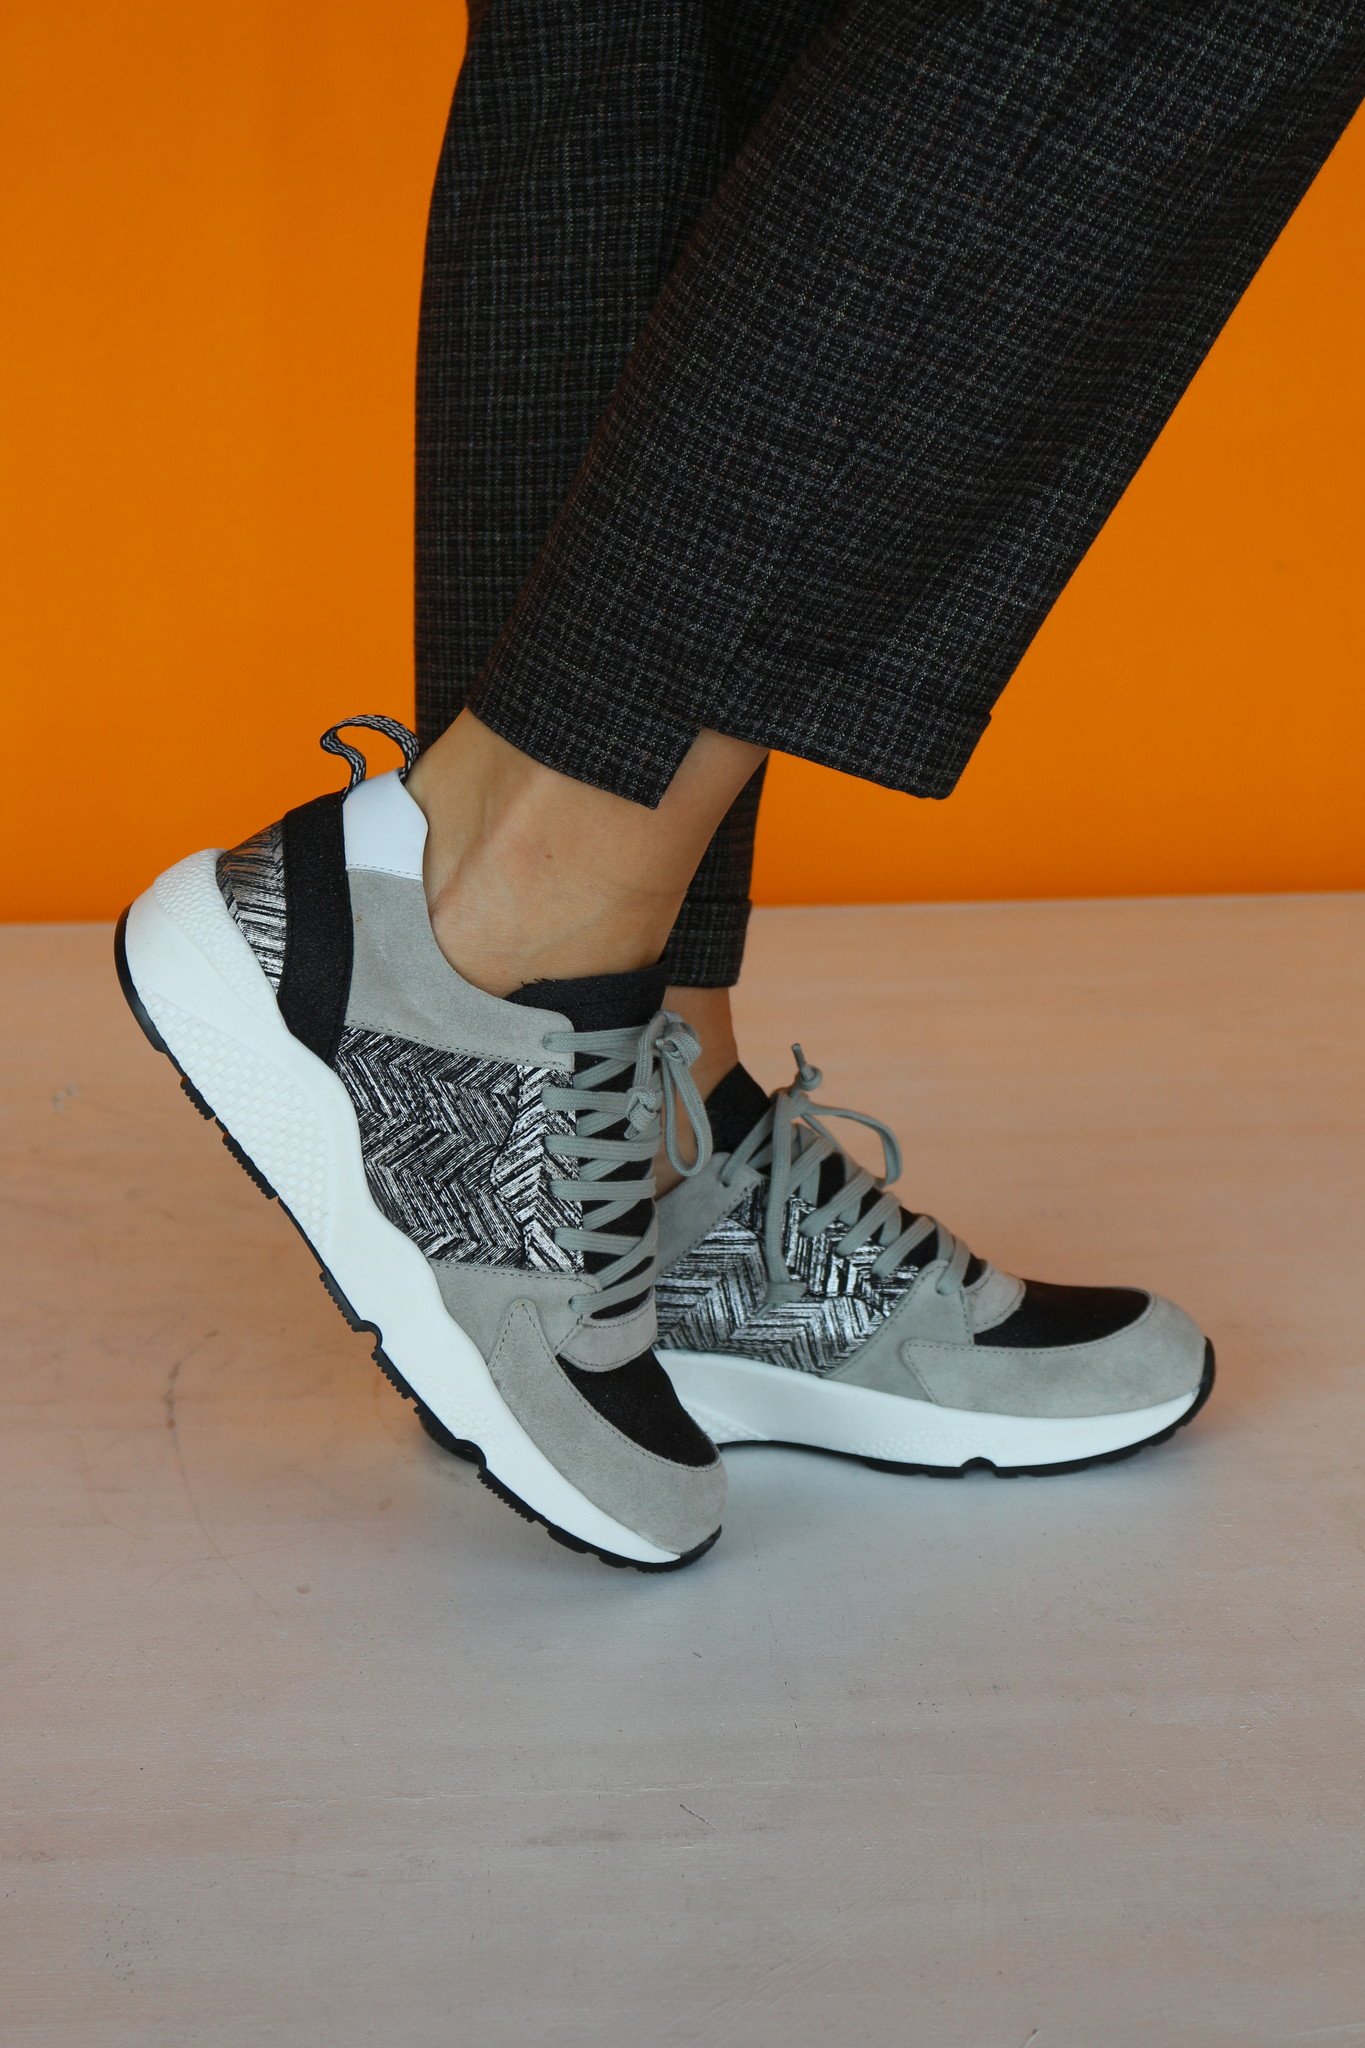 P448 SNEAKERS FROM P448